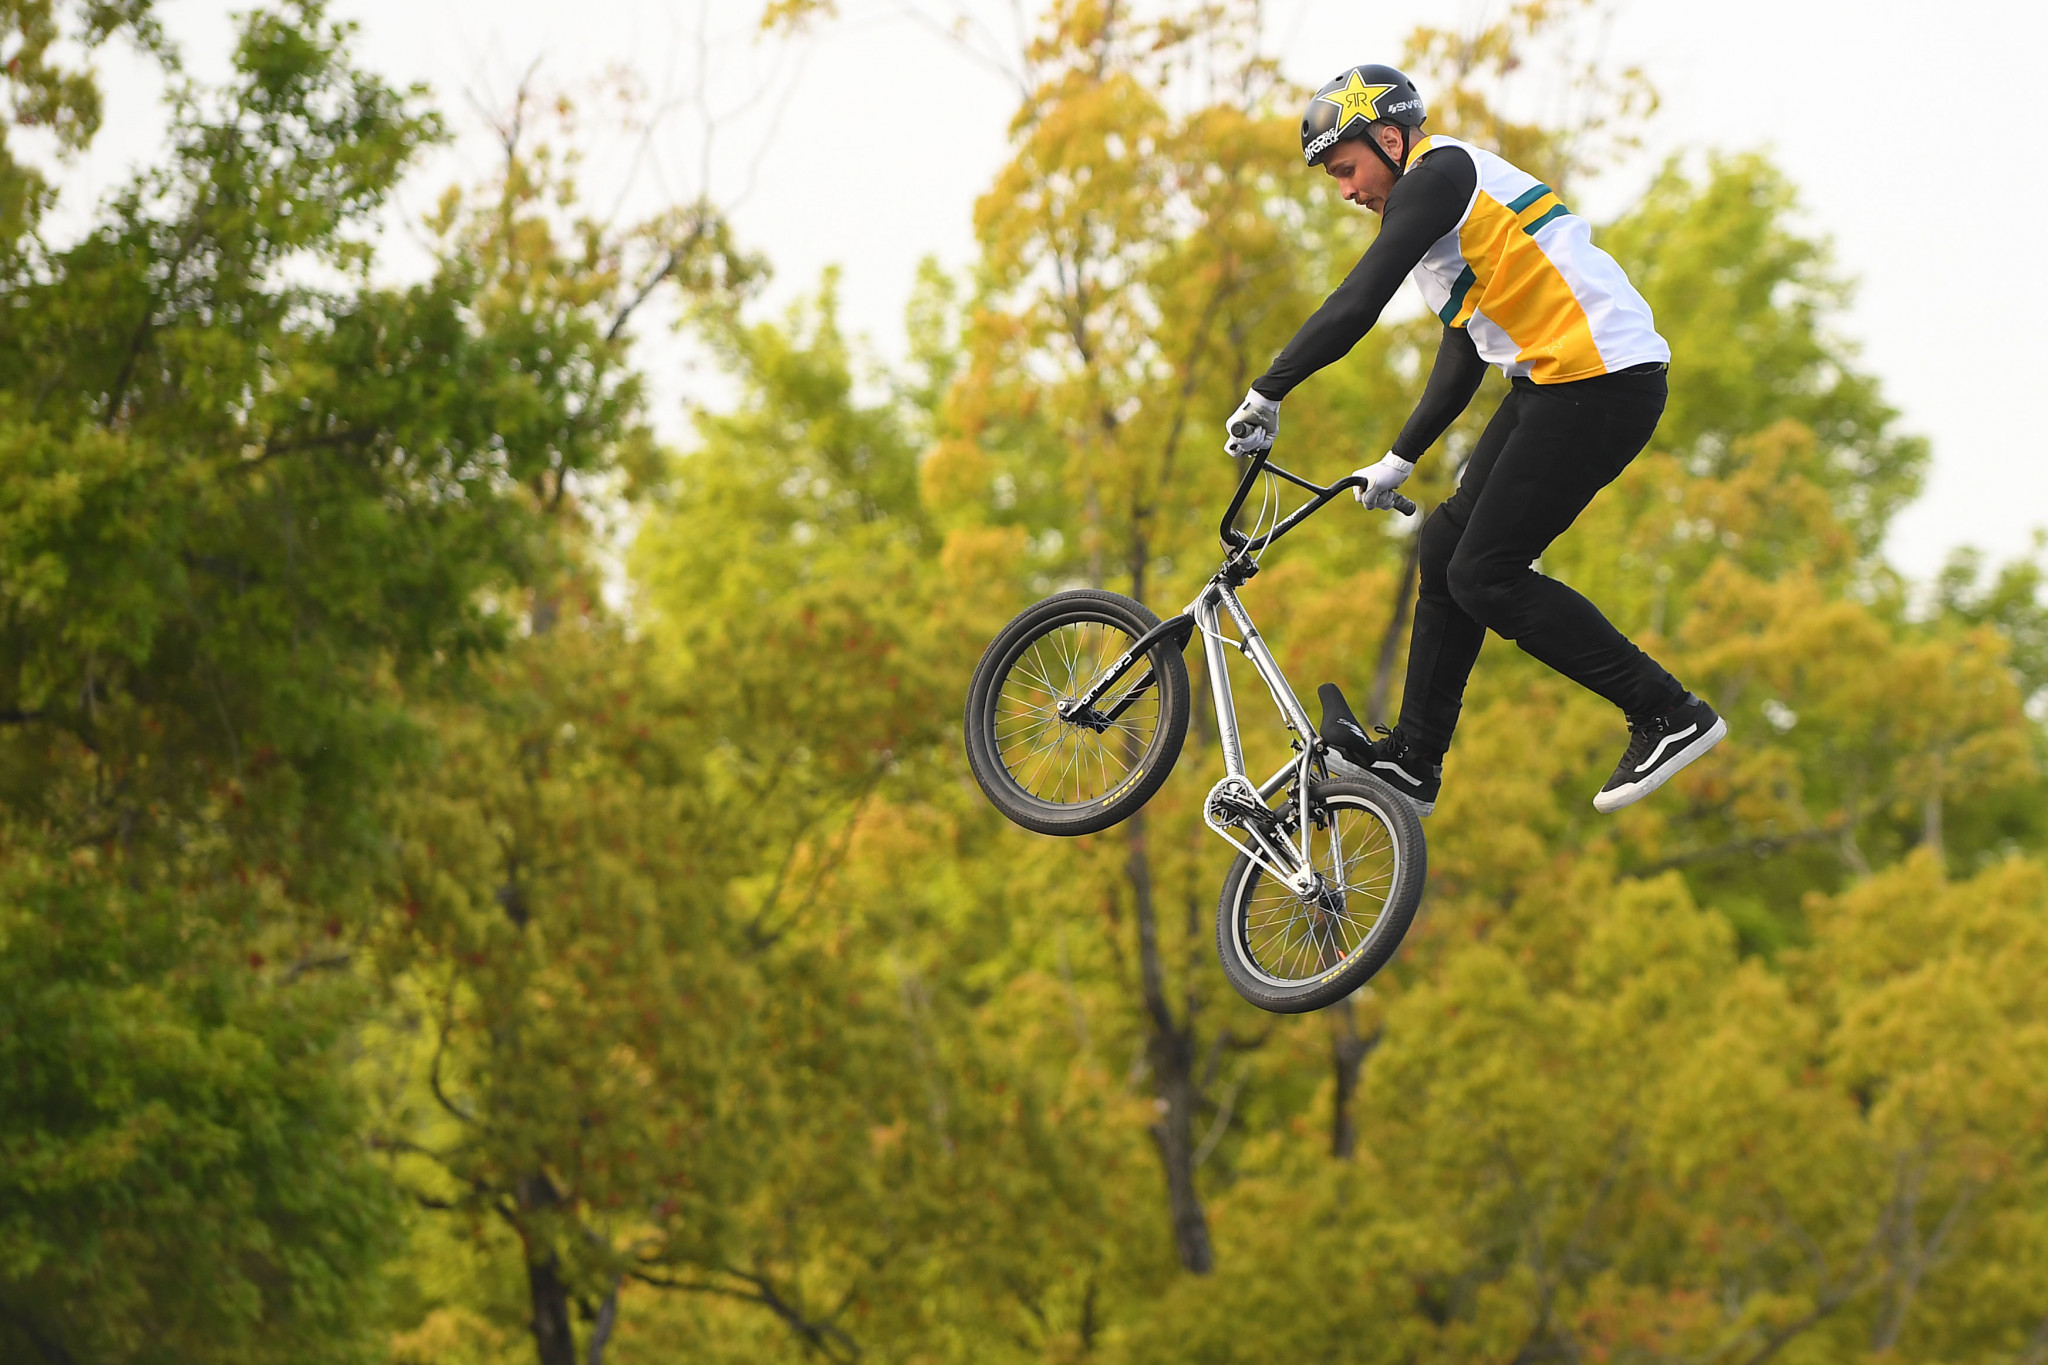 Riders arrive in Montpellier for BMX Freestyle World Cup with one eye on Tokyo – and Paris